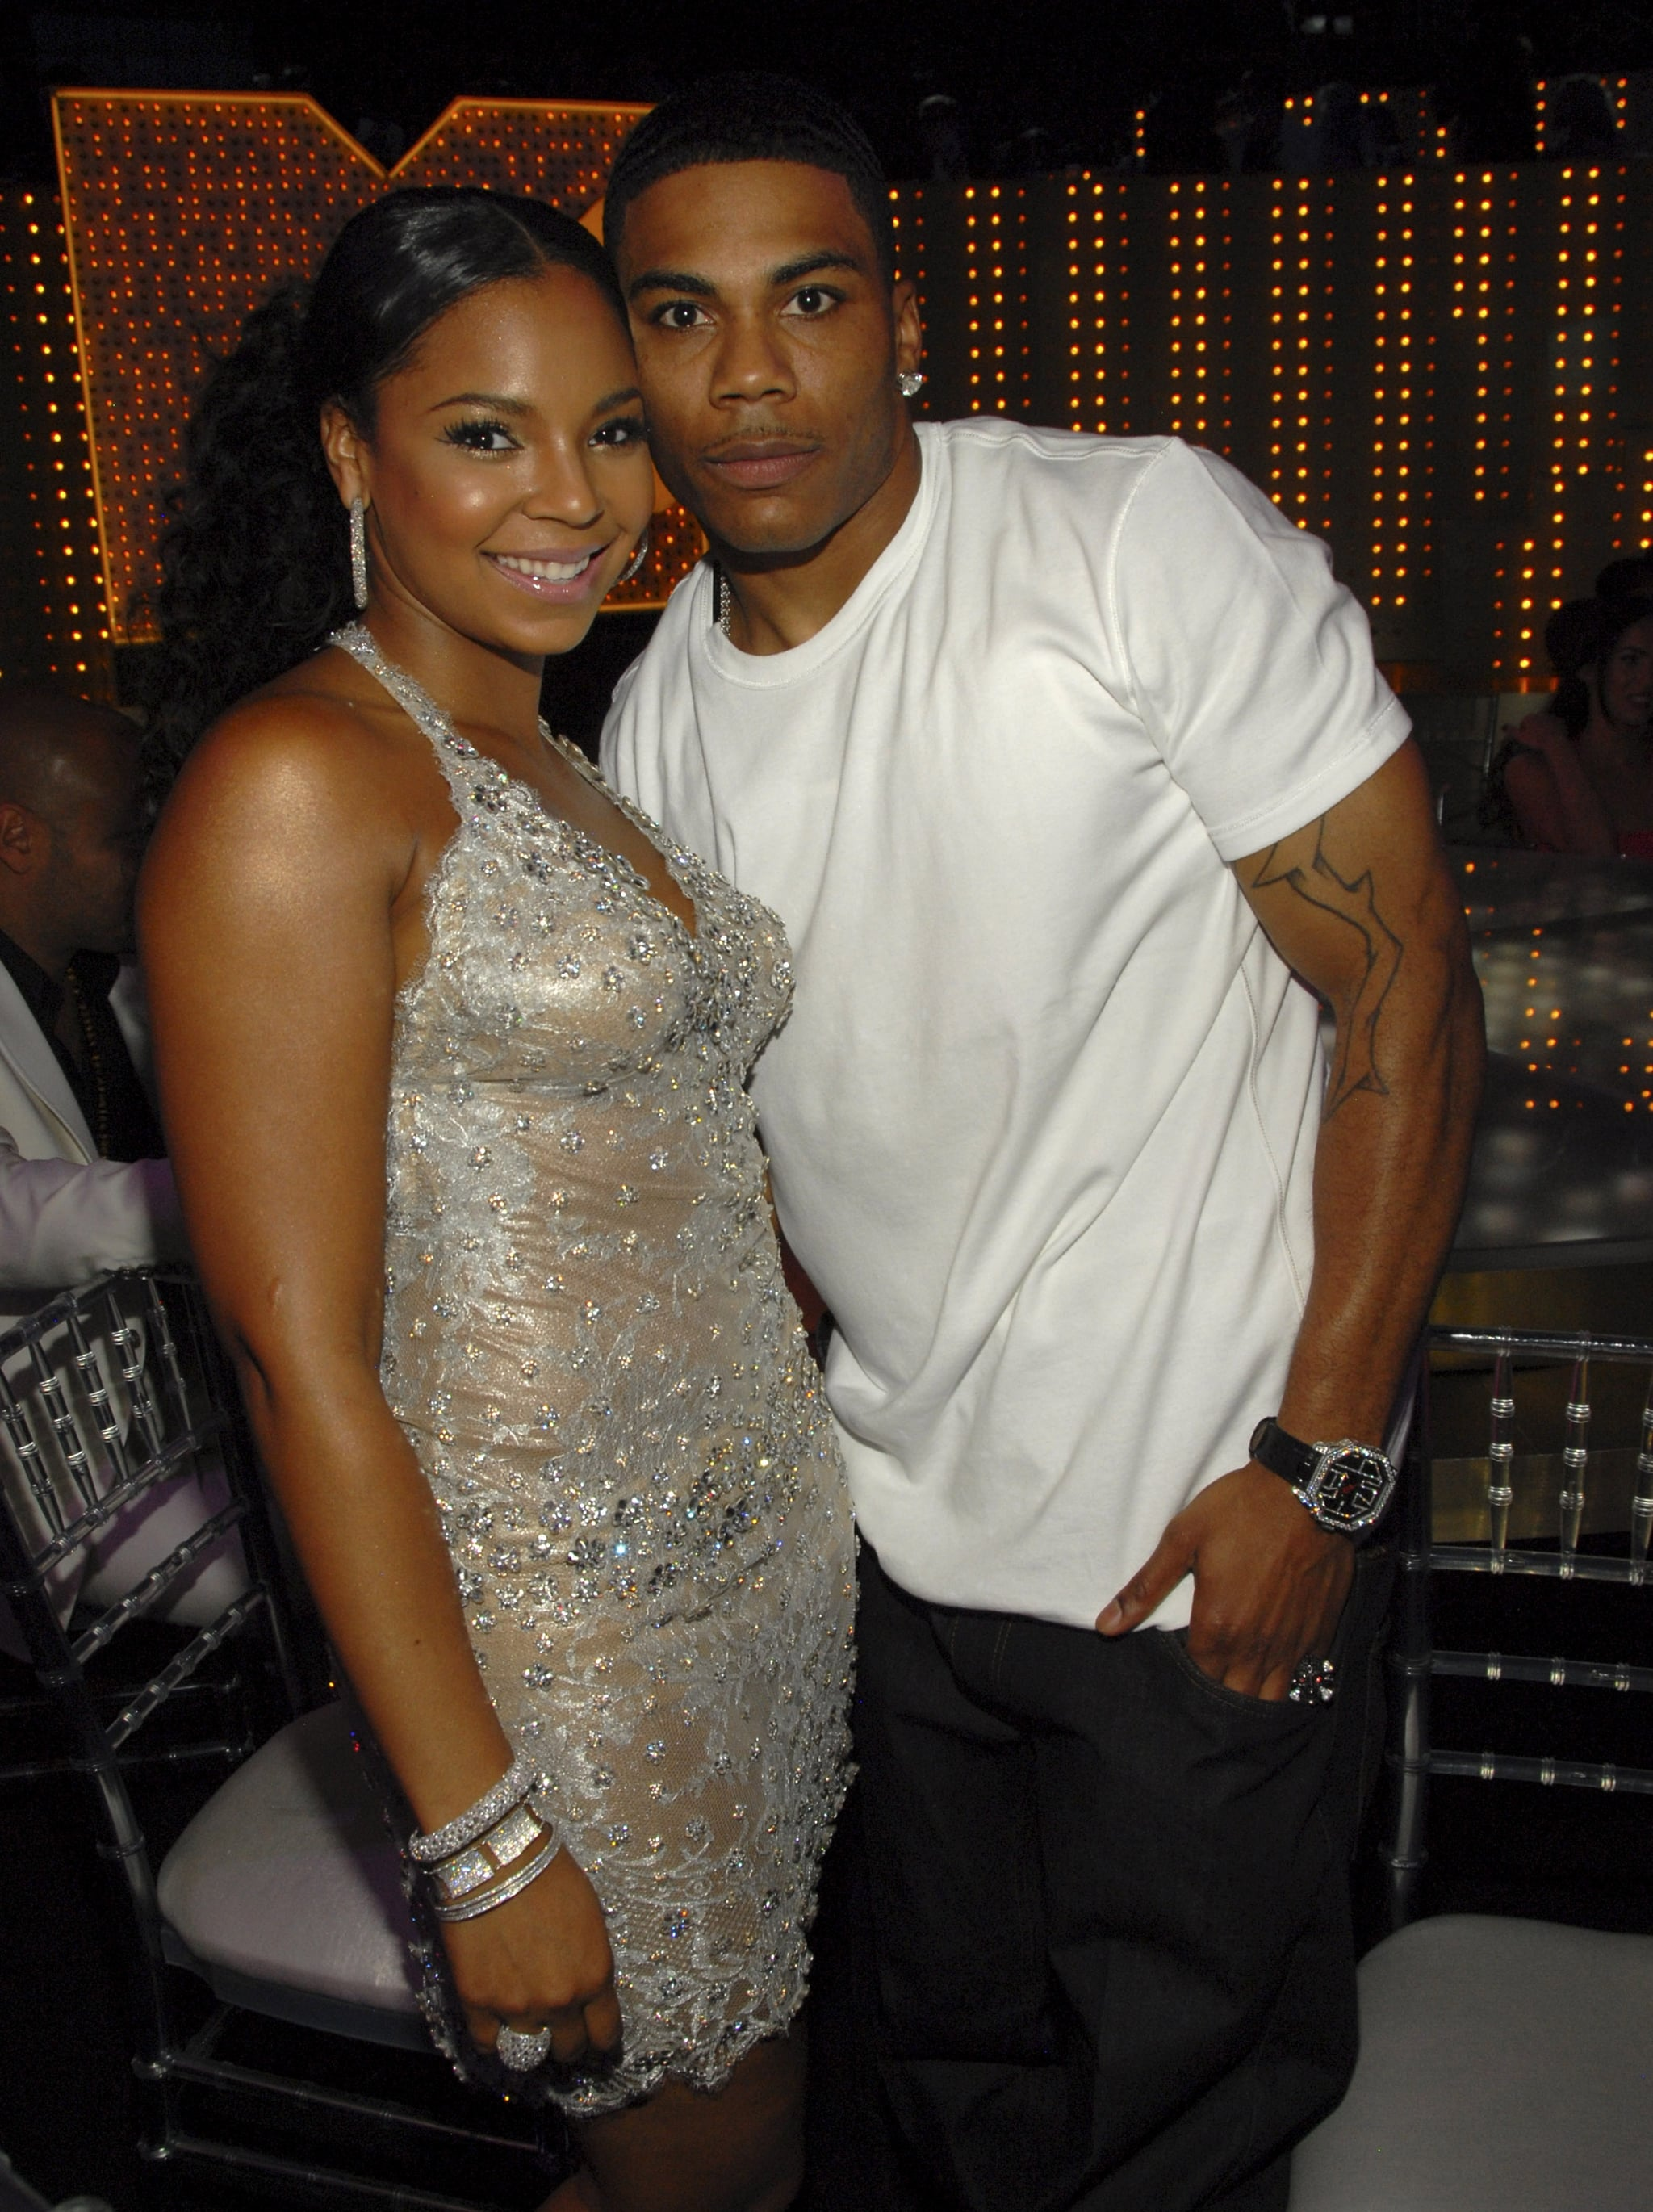 Ashanti and Nelly, 2007 | A Sweet, Somewhat Hilarious ...